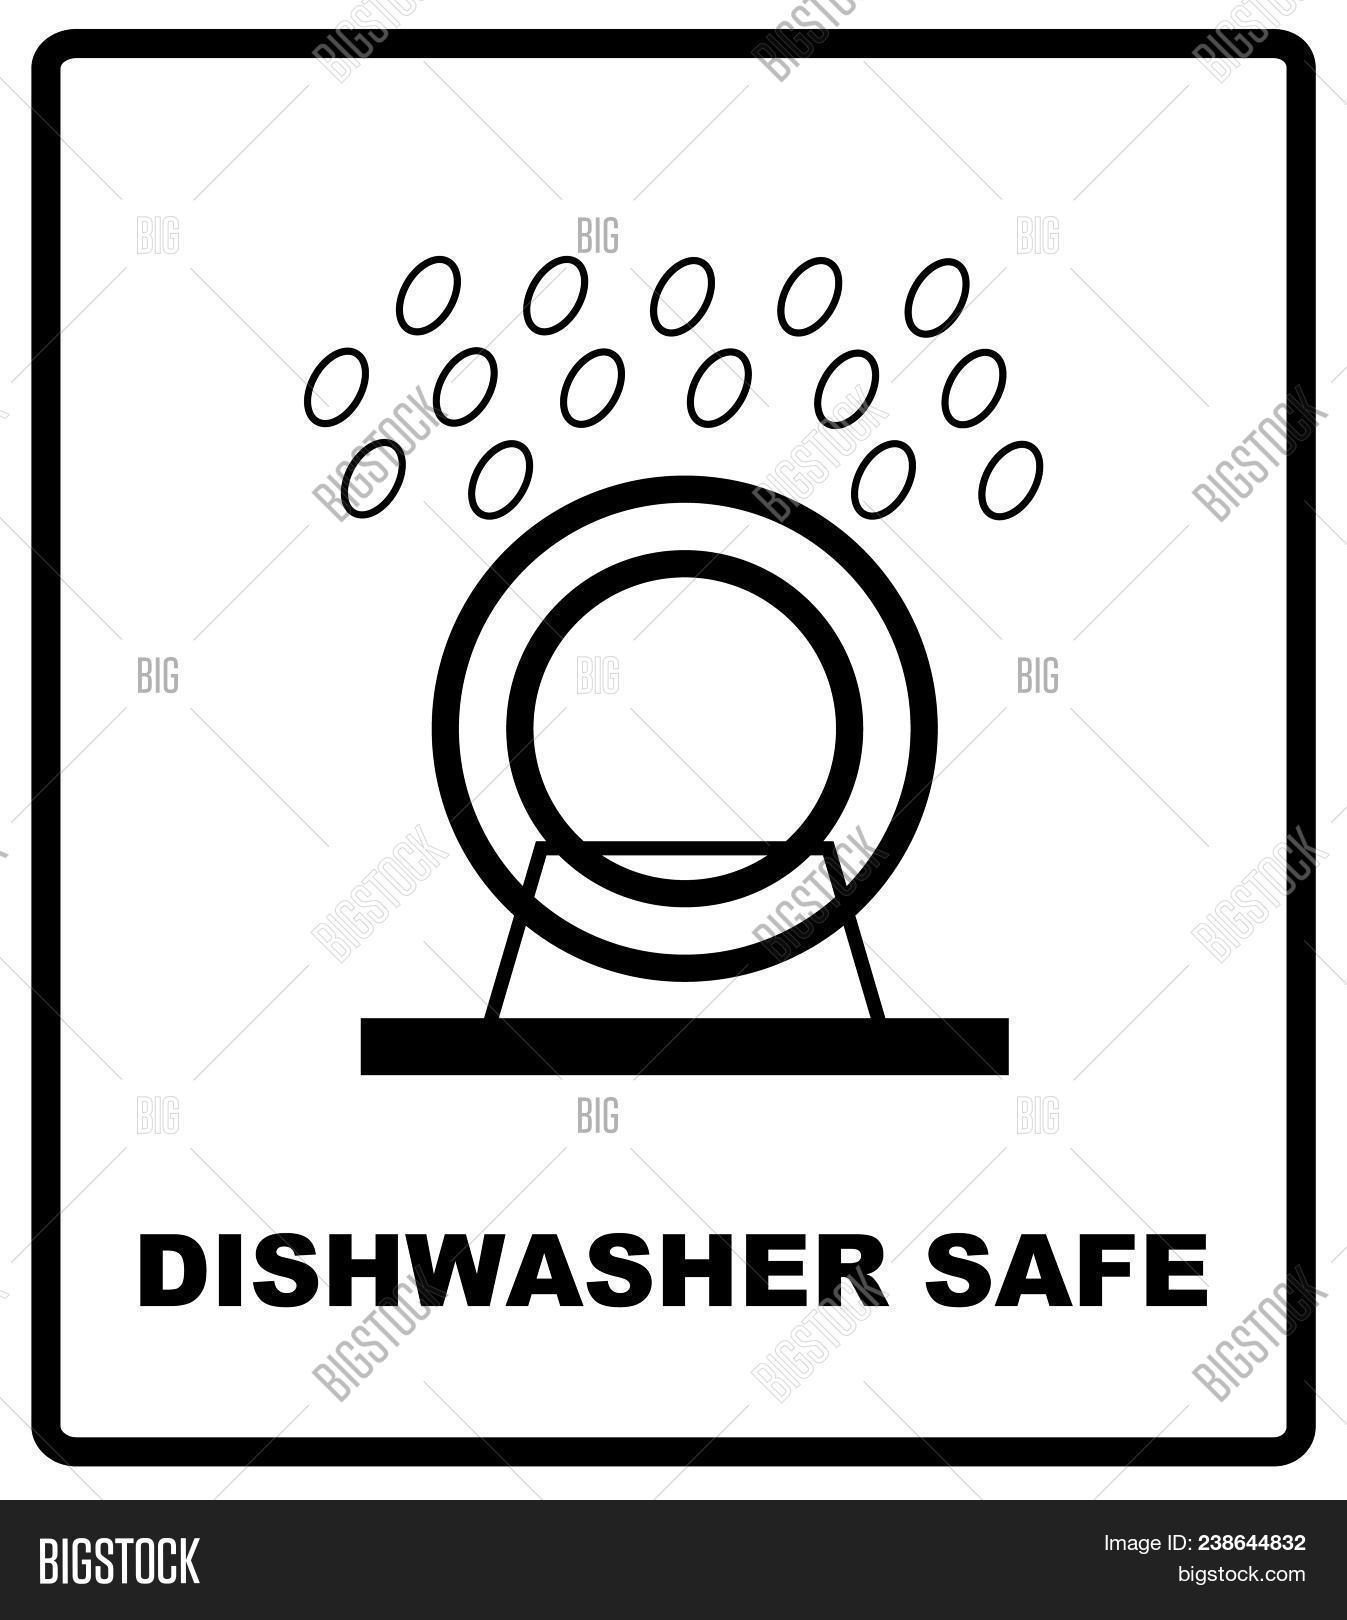 Dishwasher Safe Symbol Image Photo Free Trial Bigstock